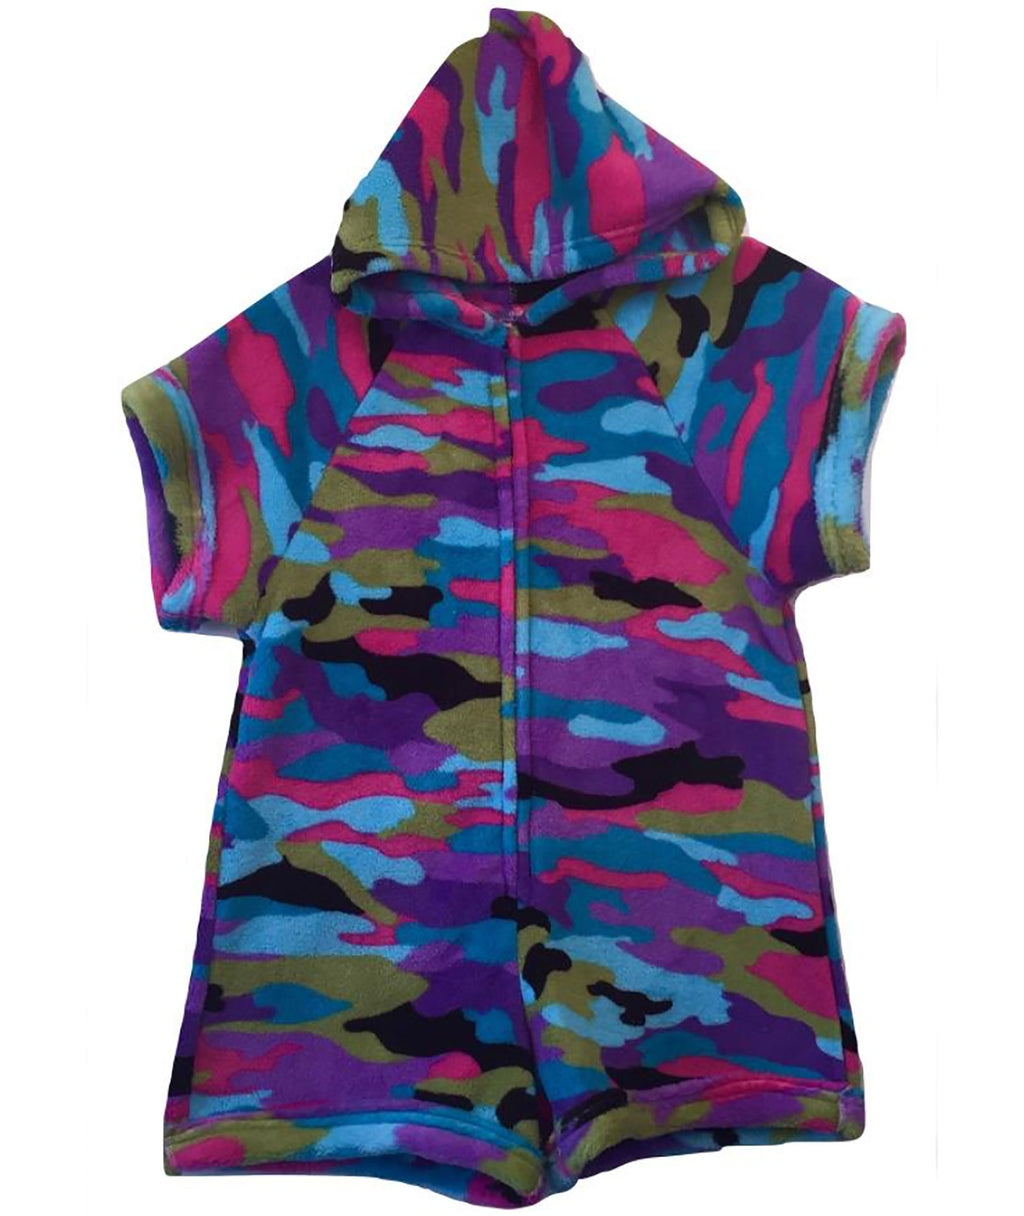 Made with Love and Kisses Funky Camo Romper